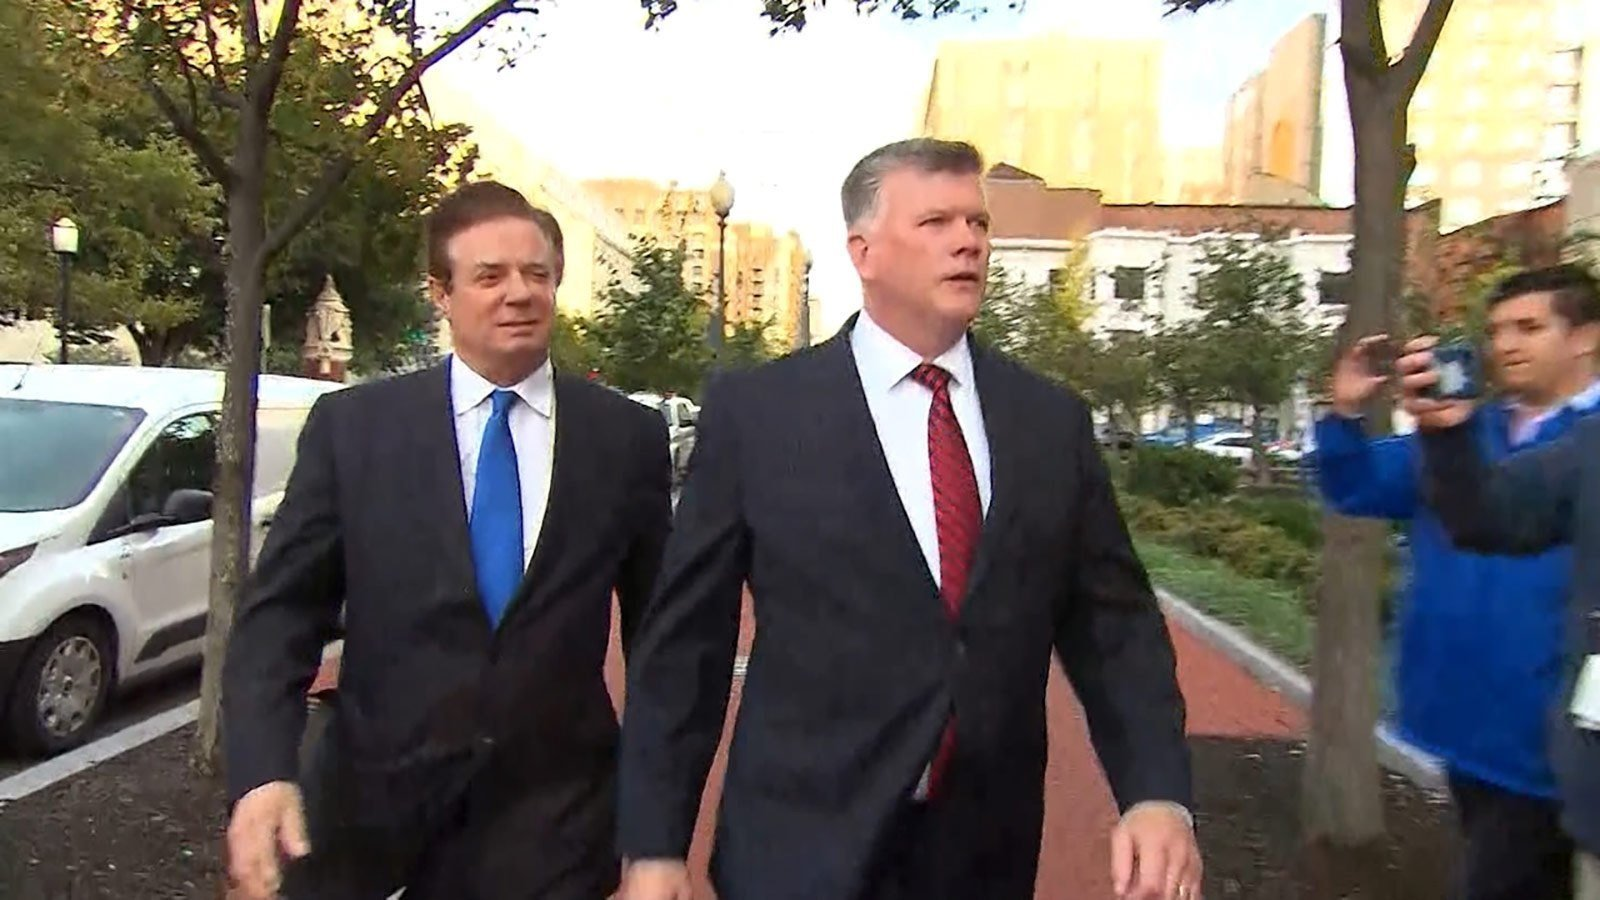 Paul Manafort pleads not guilty in Virginia